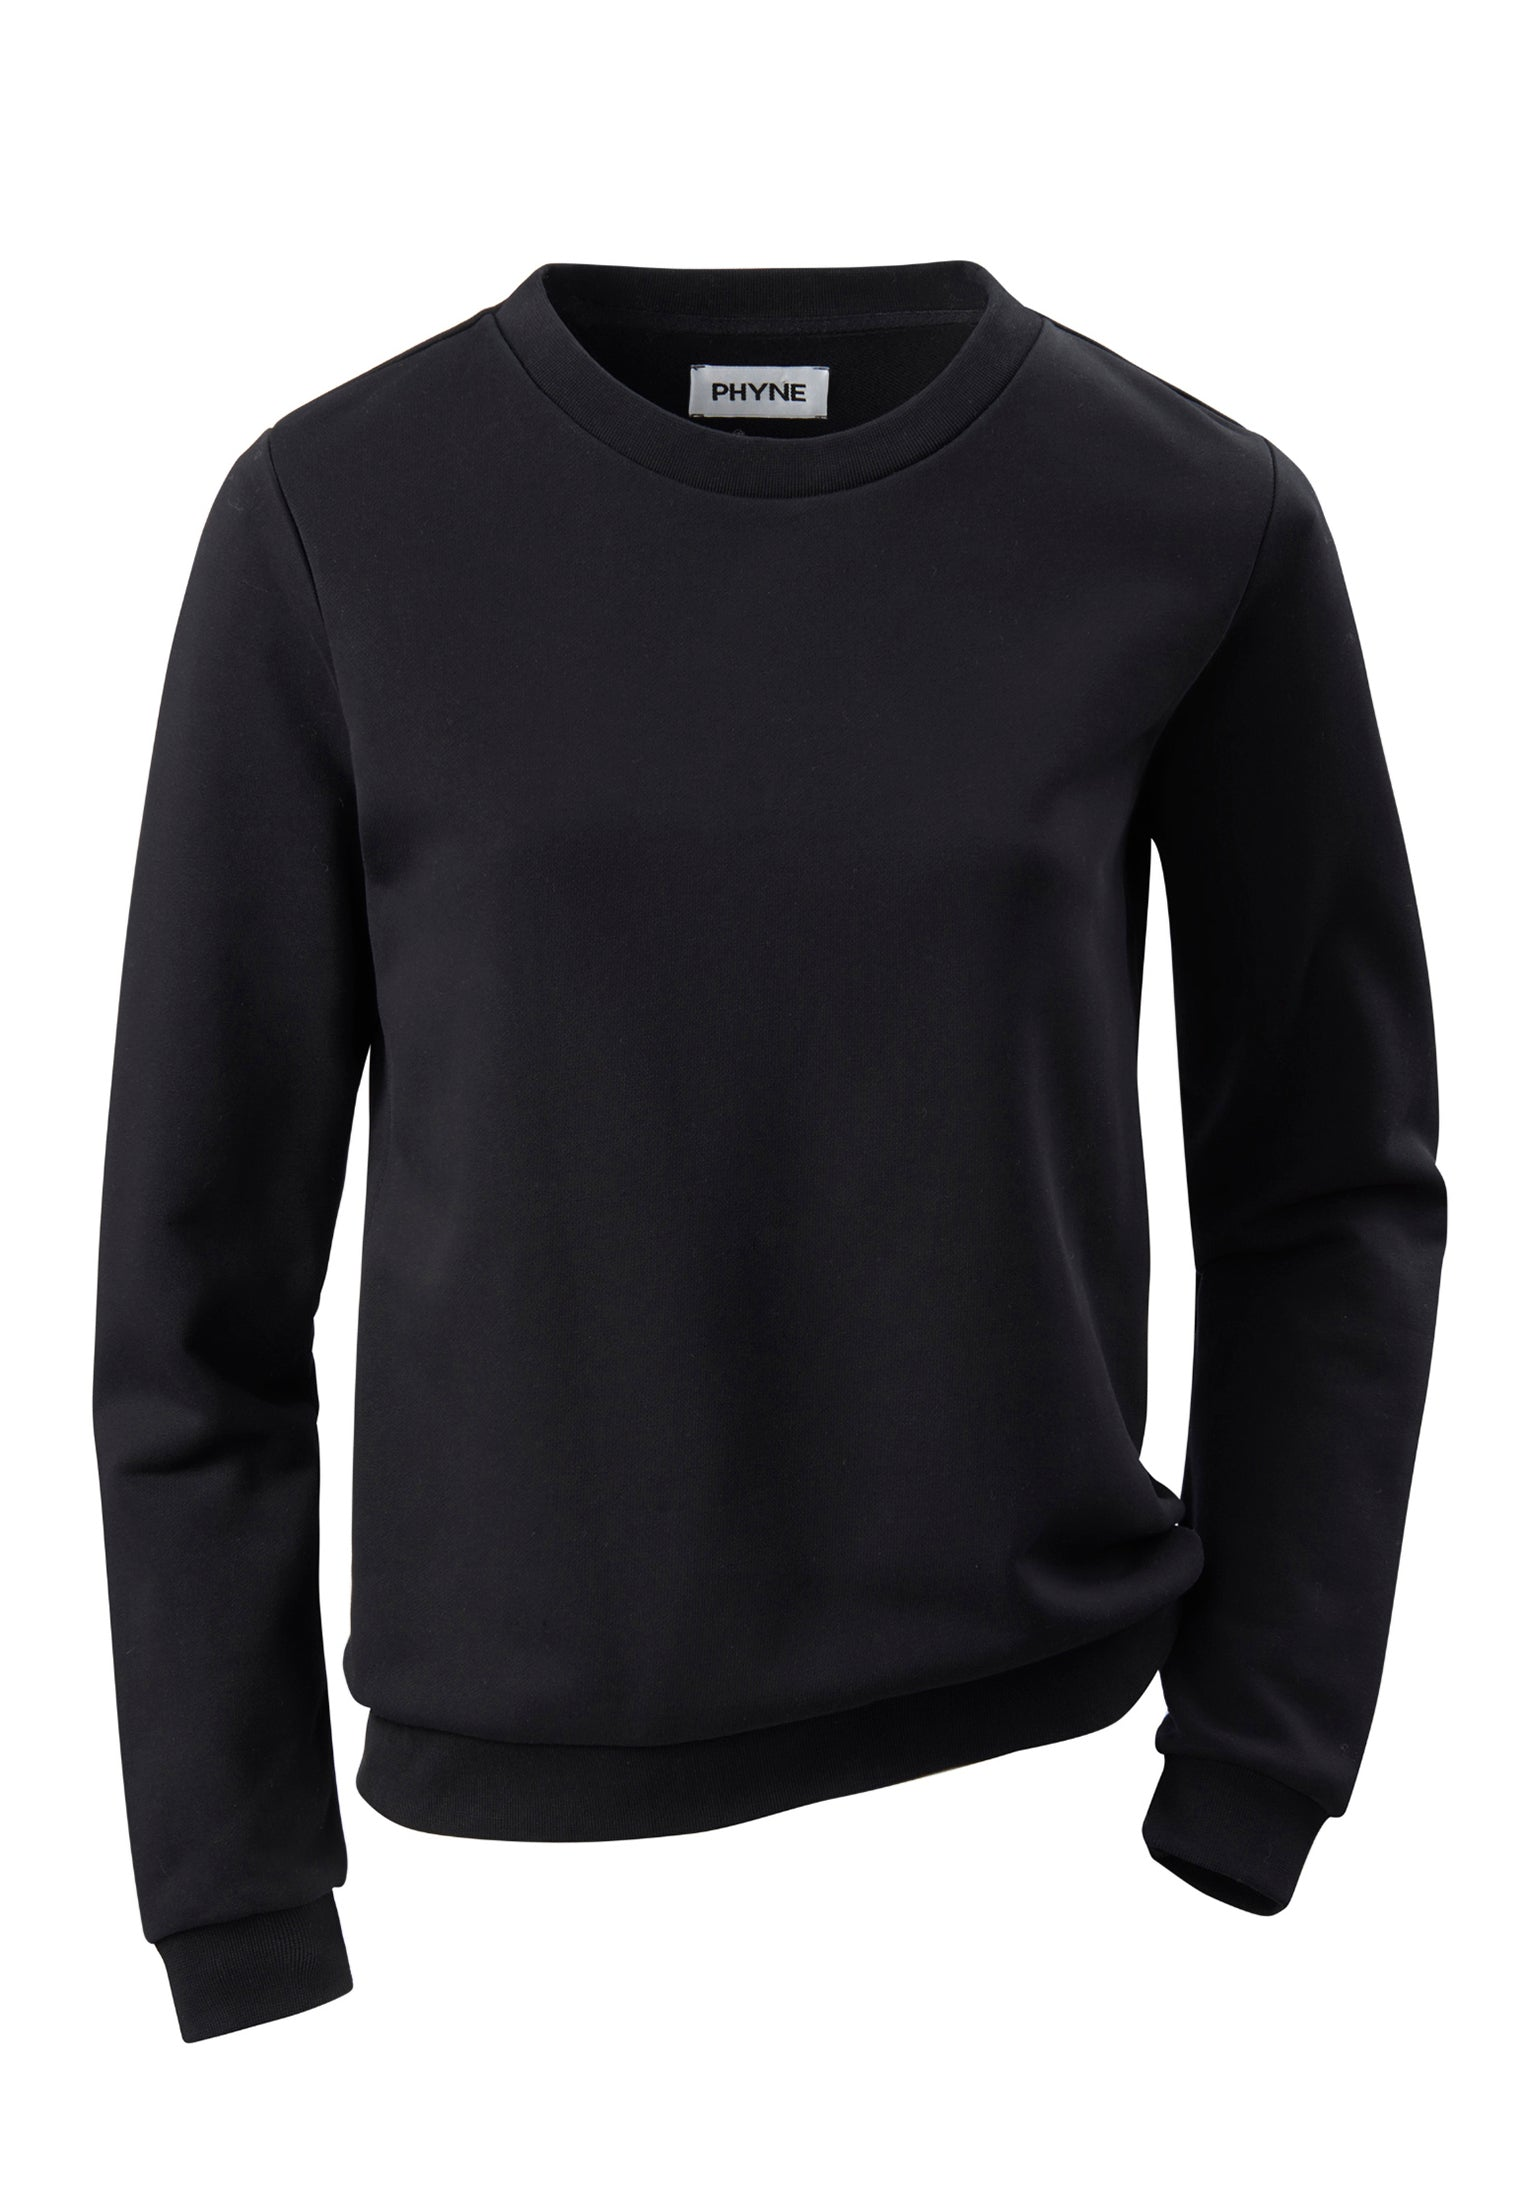 The Sweatshirt Black